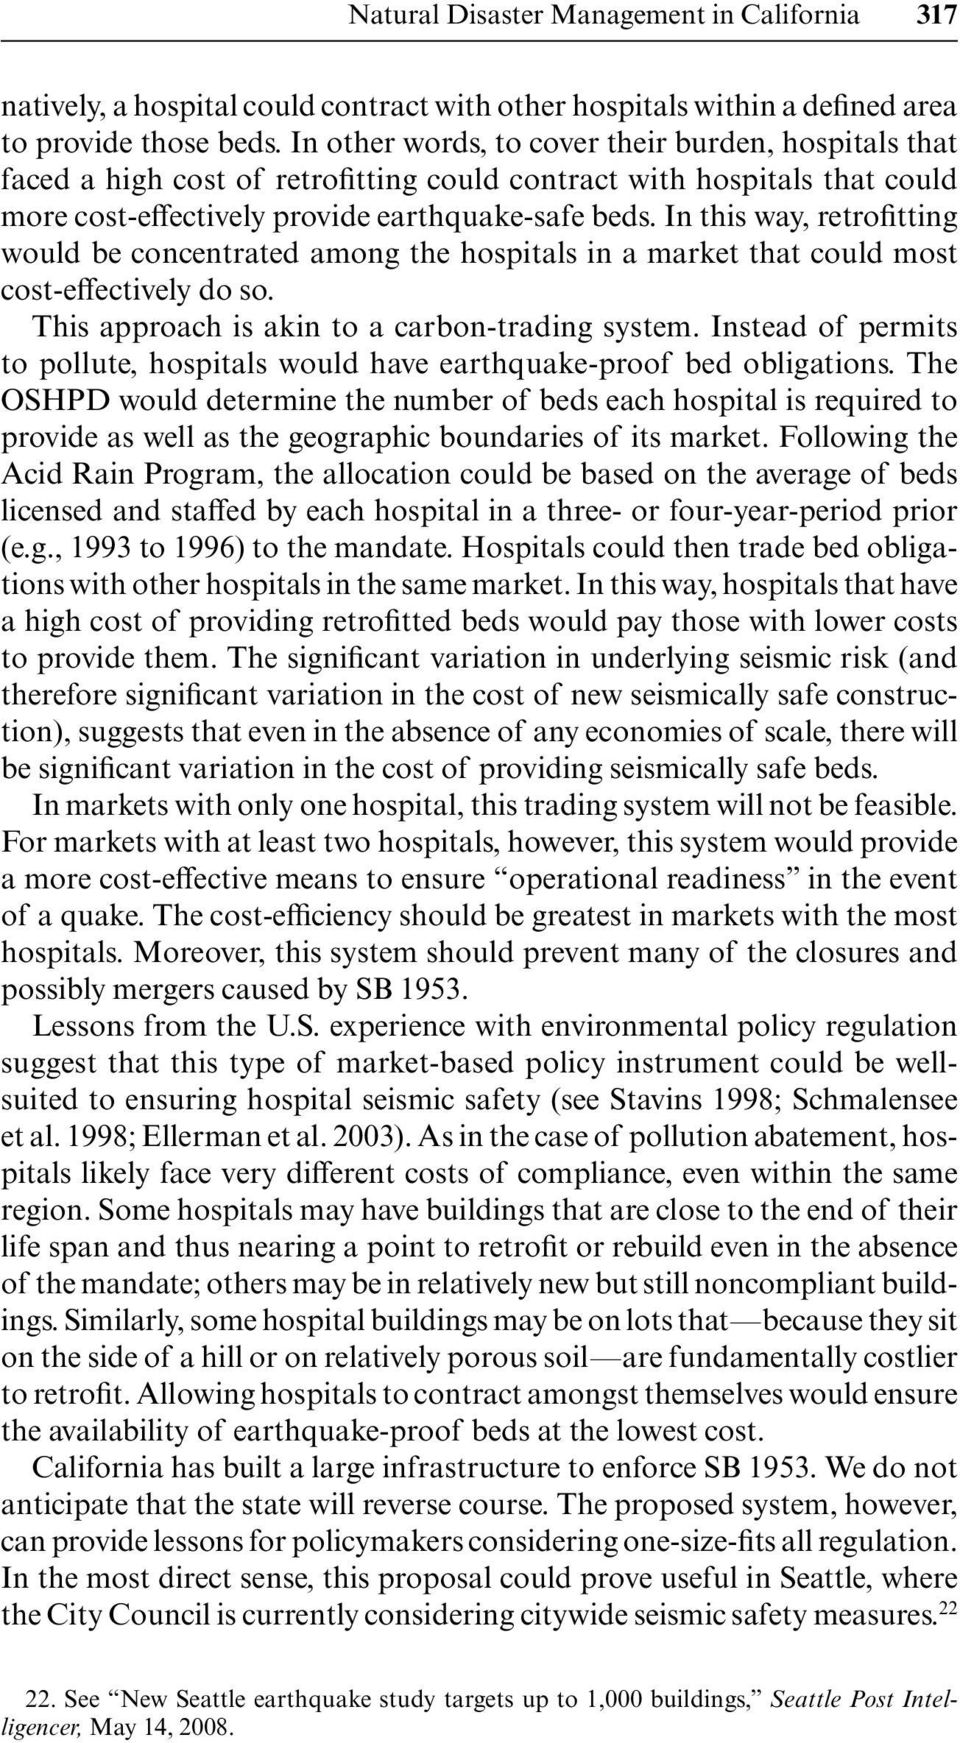 In this way, retrofitting would be concentrated among the hospitals in a market that could most cost-effectively do so. This approach is akin to a carbon- trading system.